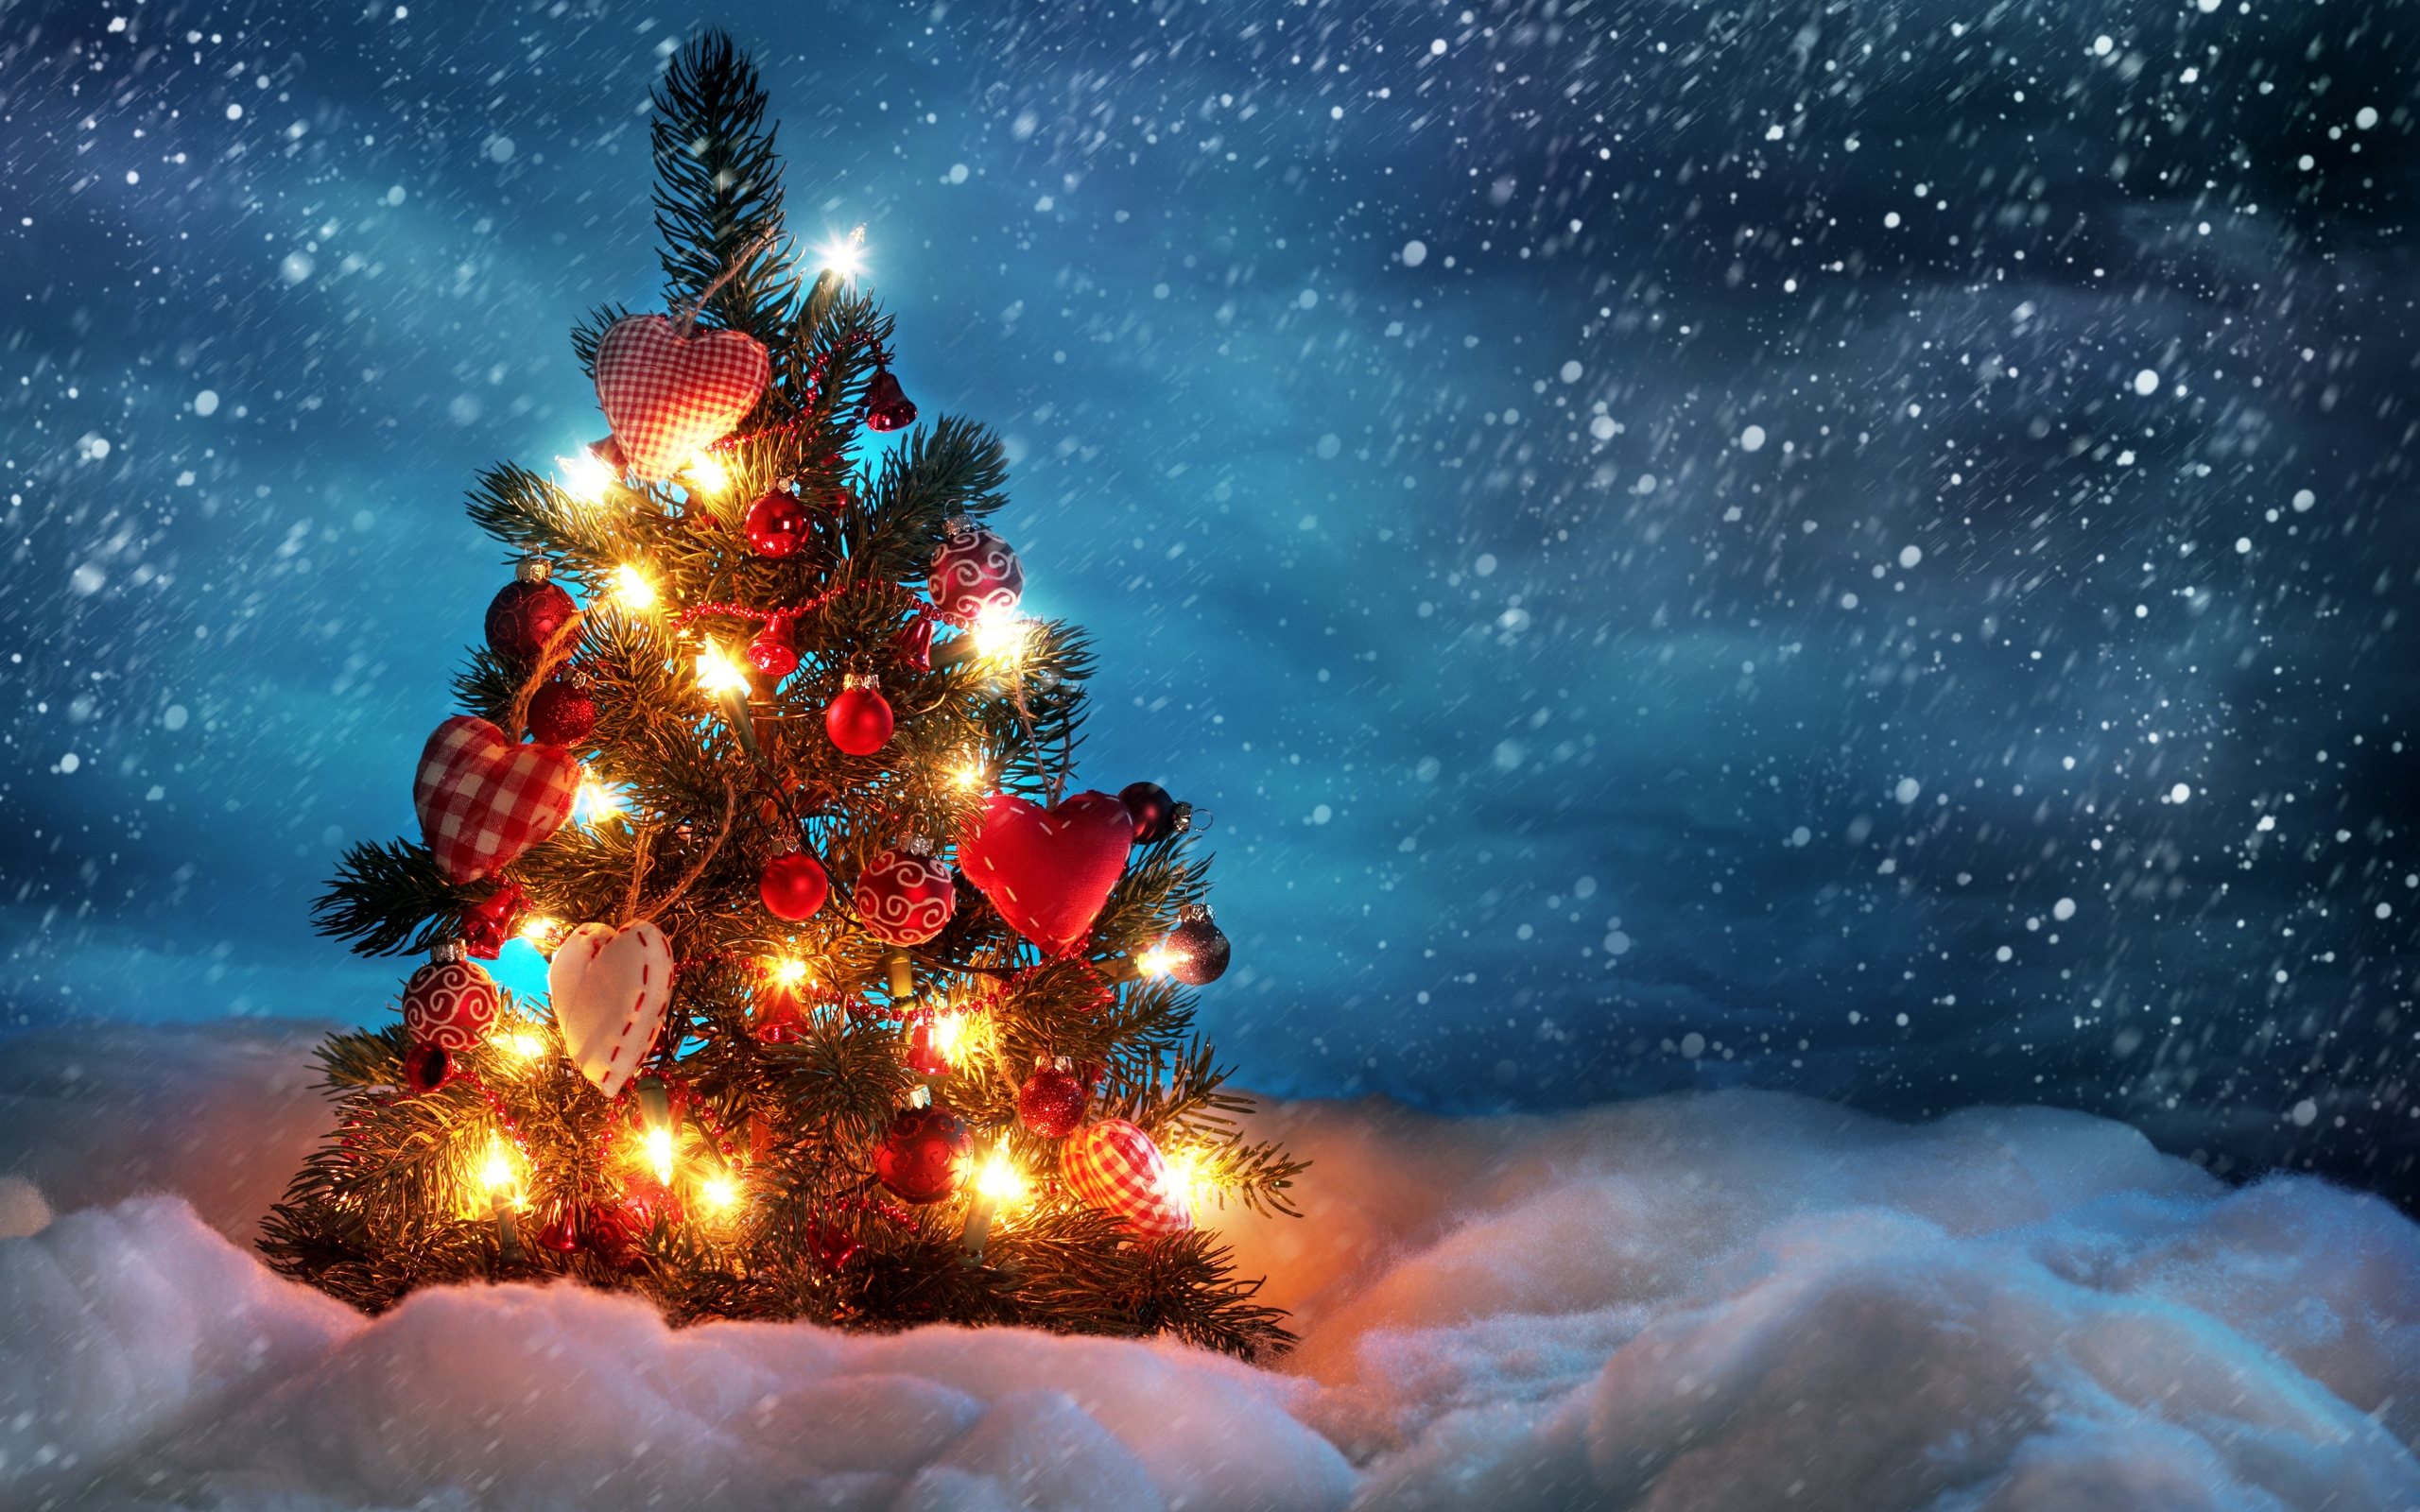 Christmas Tree Desktop Wallpaper 2560x1600